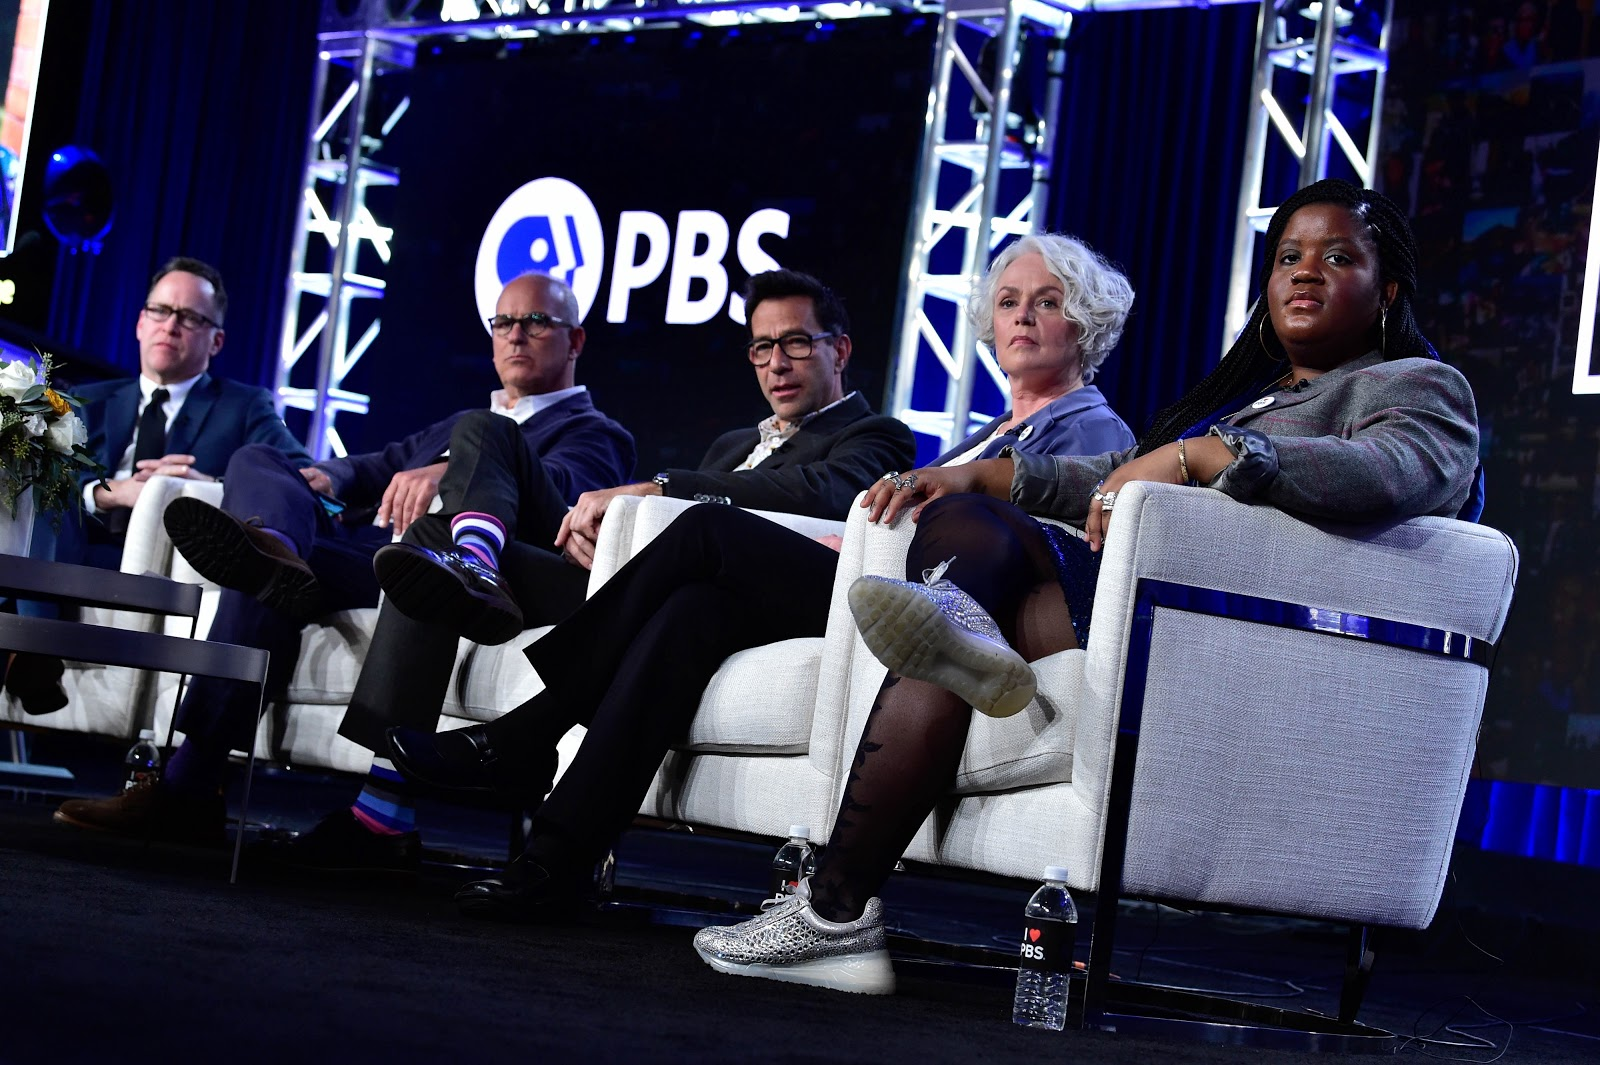 PBS American Portrait Launches at Winter TCAs in Pasadena